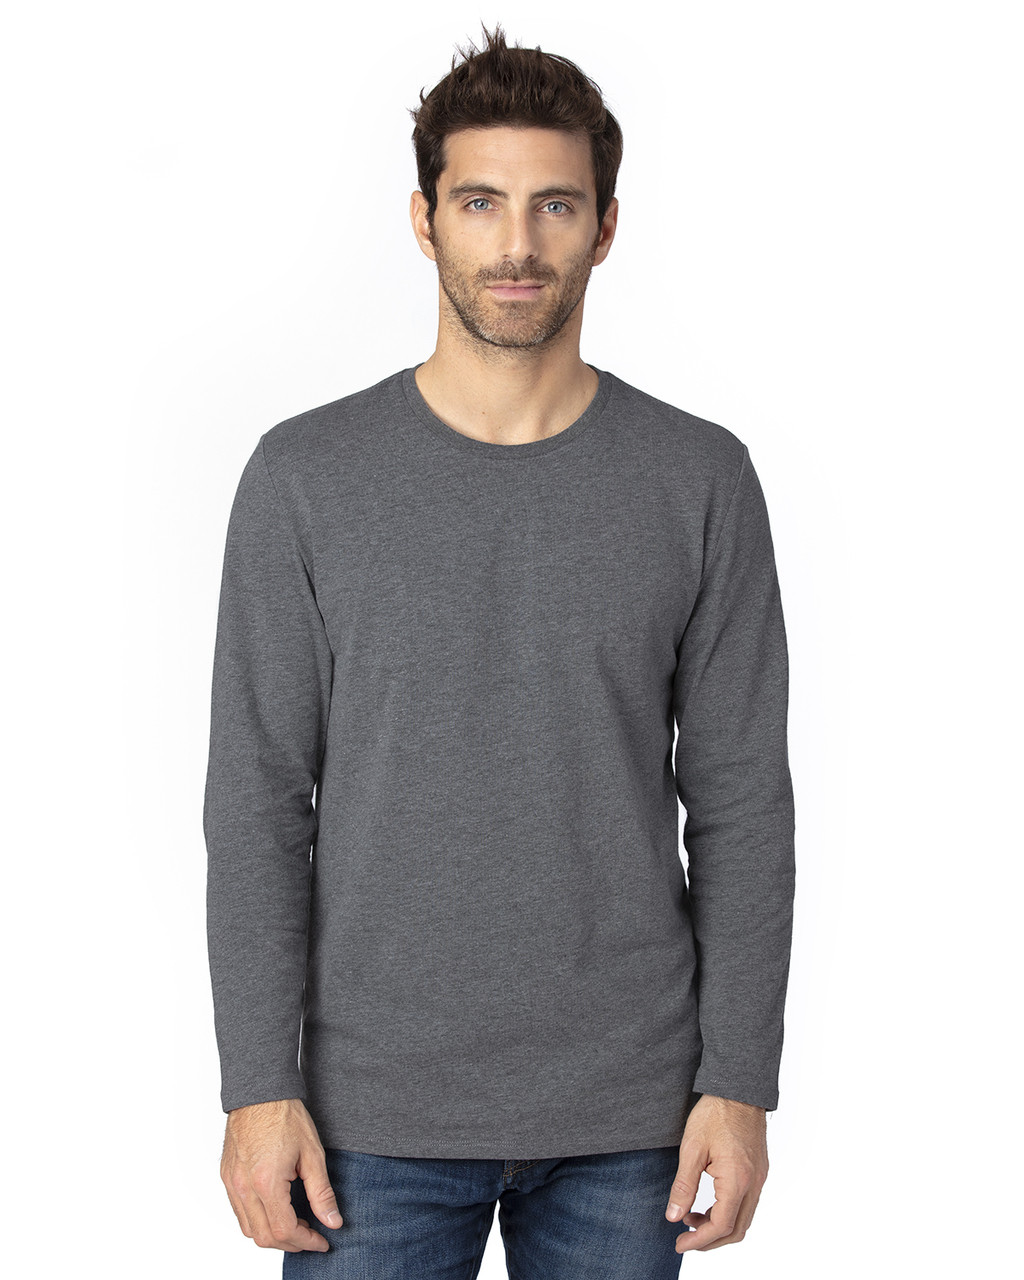 Charcoal Heather - 100LS Threadfast Unisex Ultimate Long-Sleeve T-Shirt | T-shirt.ca